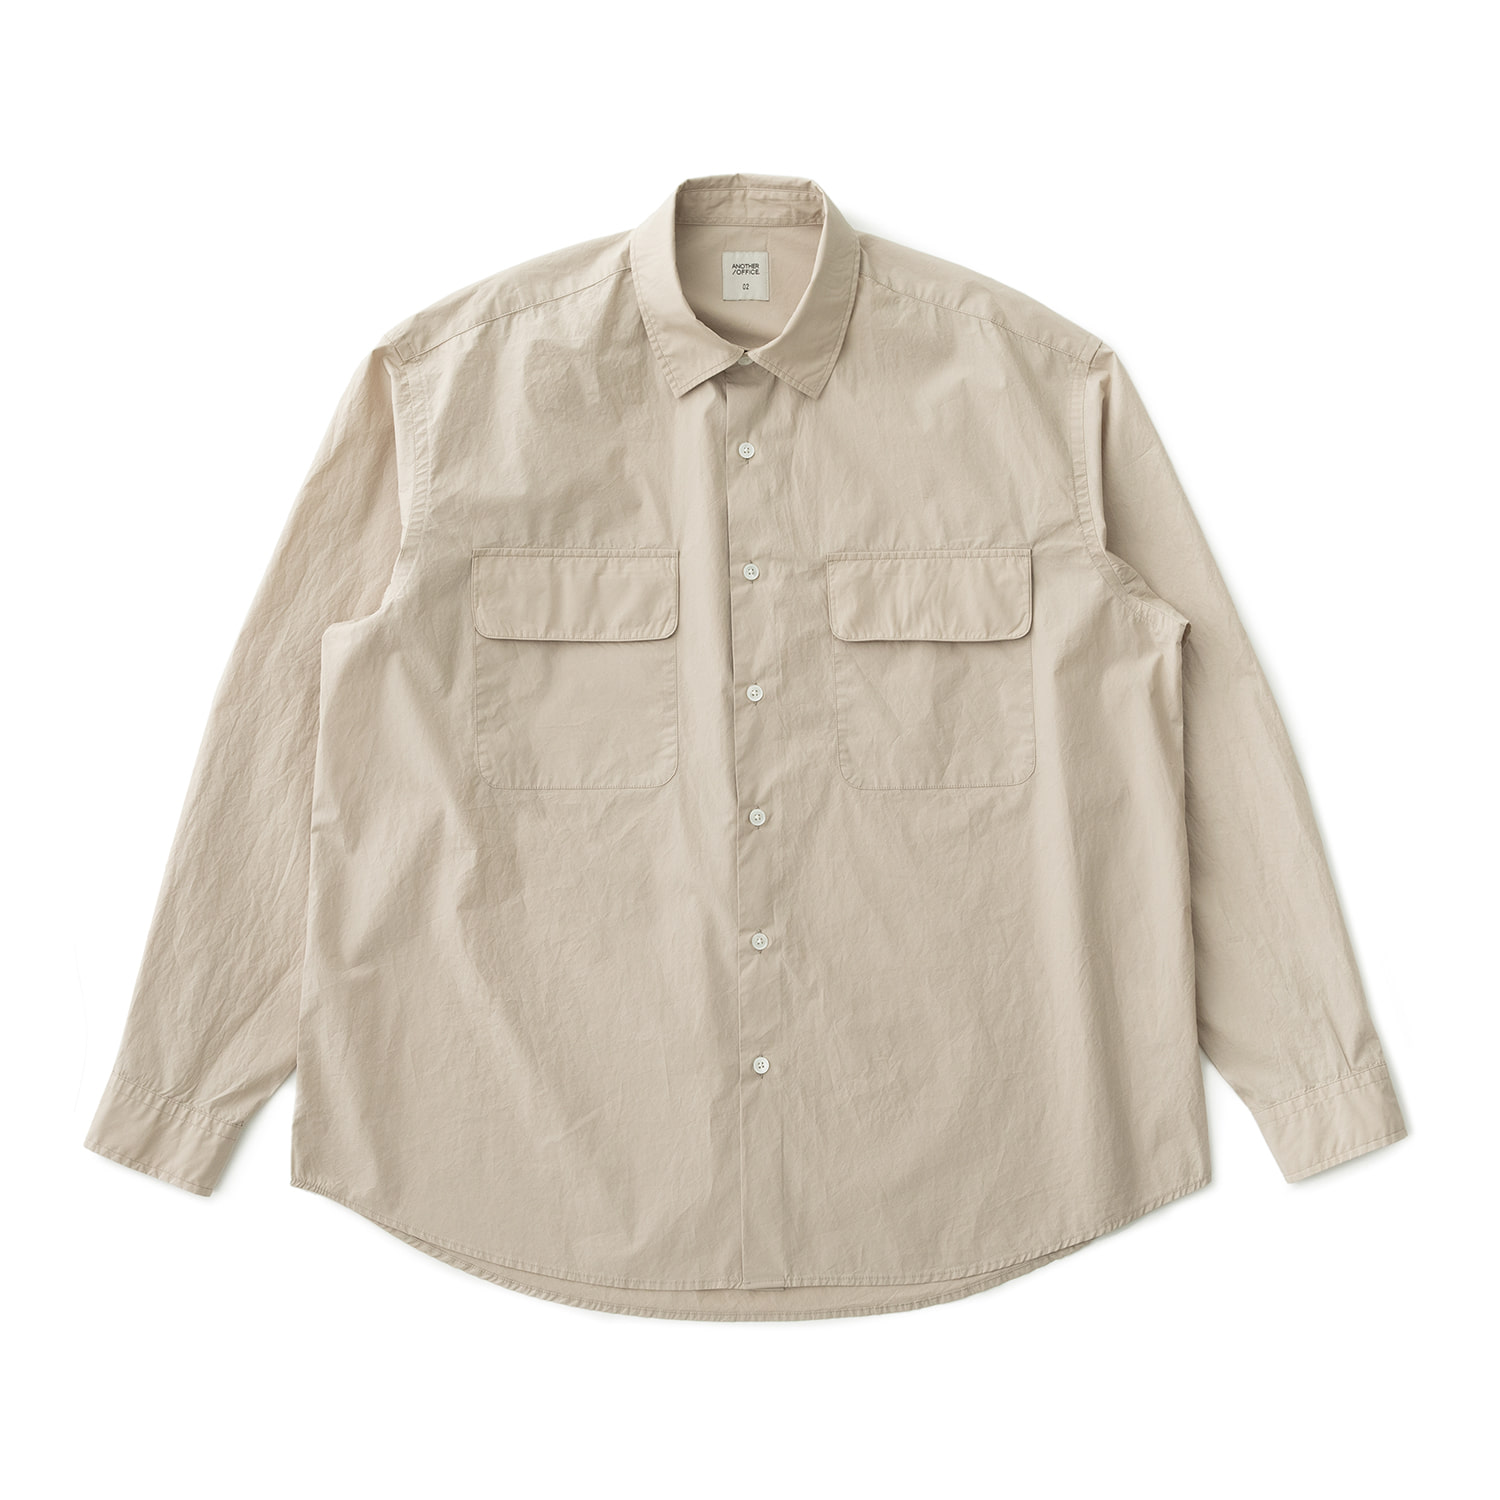 21SS Volume Shirt (Light Beige)